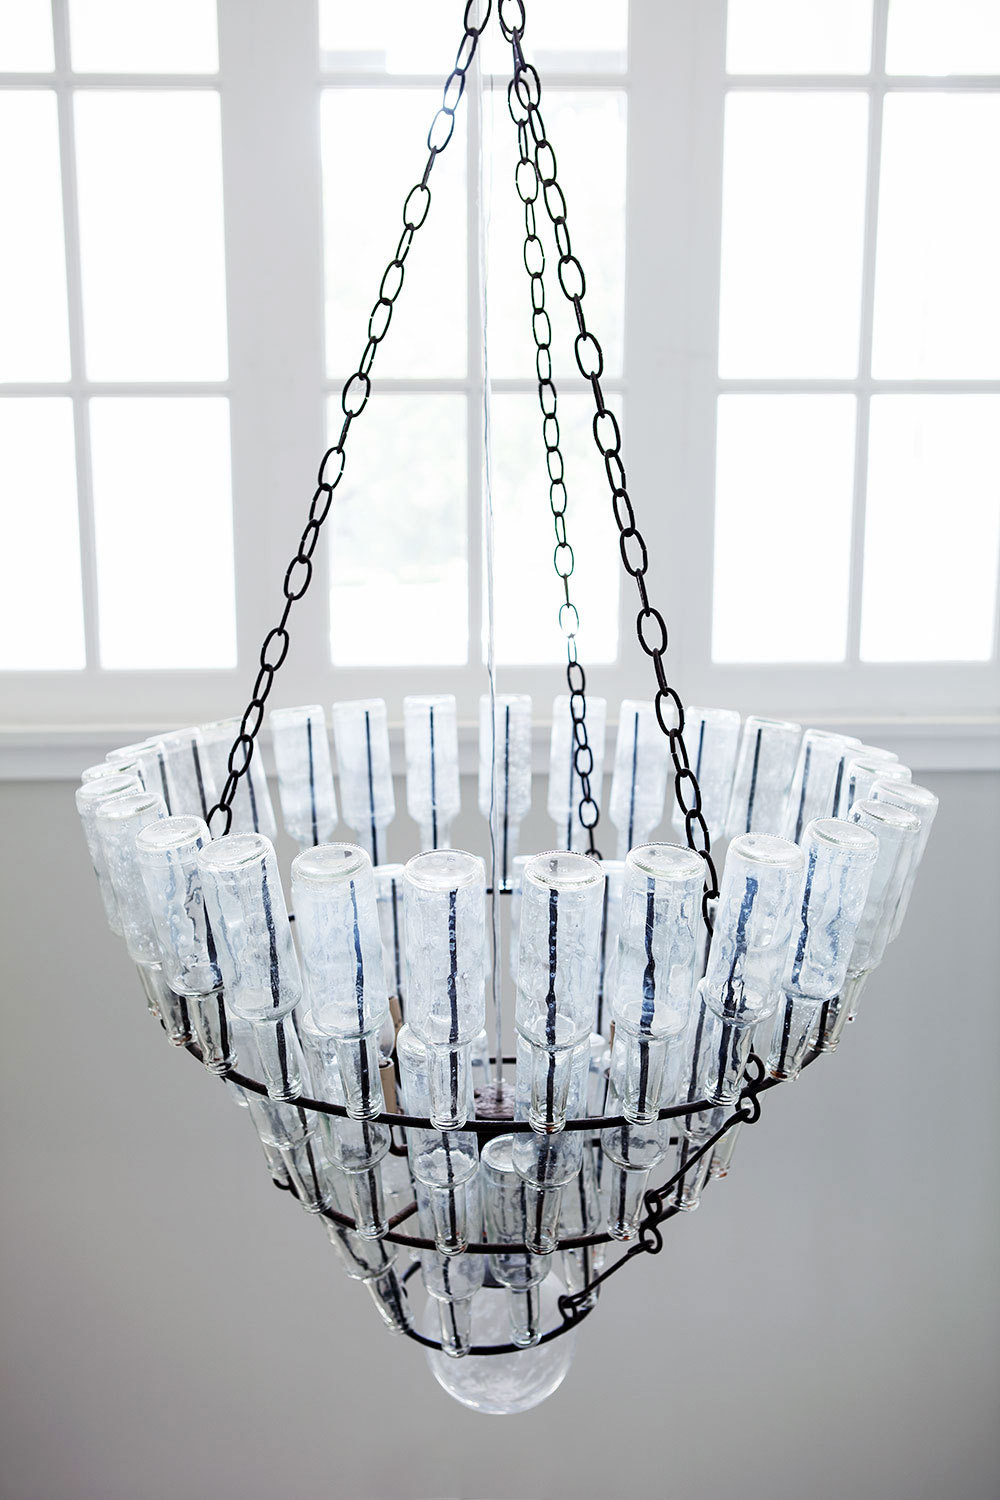 Arteriors' Stedman Chandelier dominates the entryway.